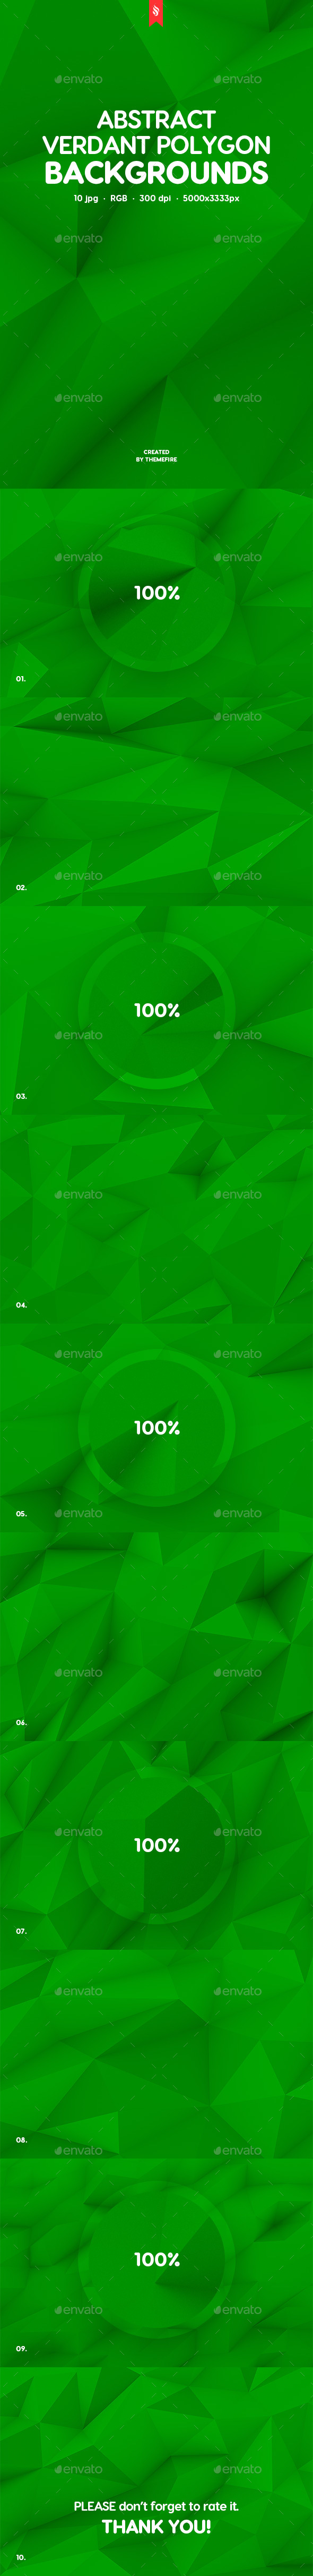 Green Polygon Backgrounds - Patterns Backgrounds